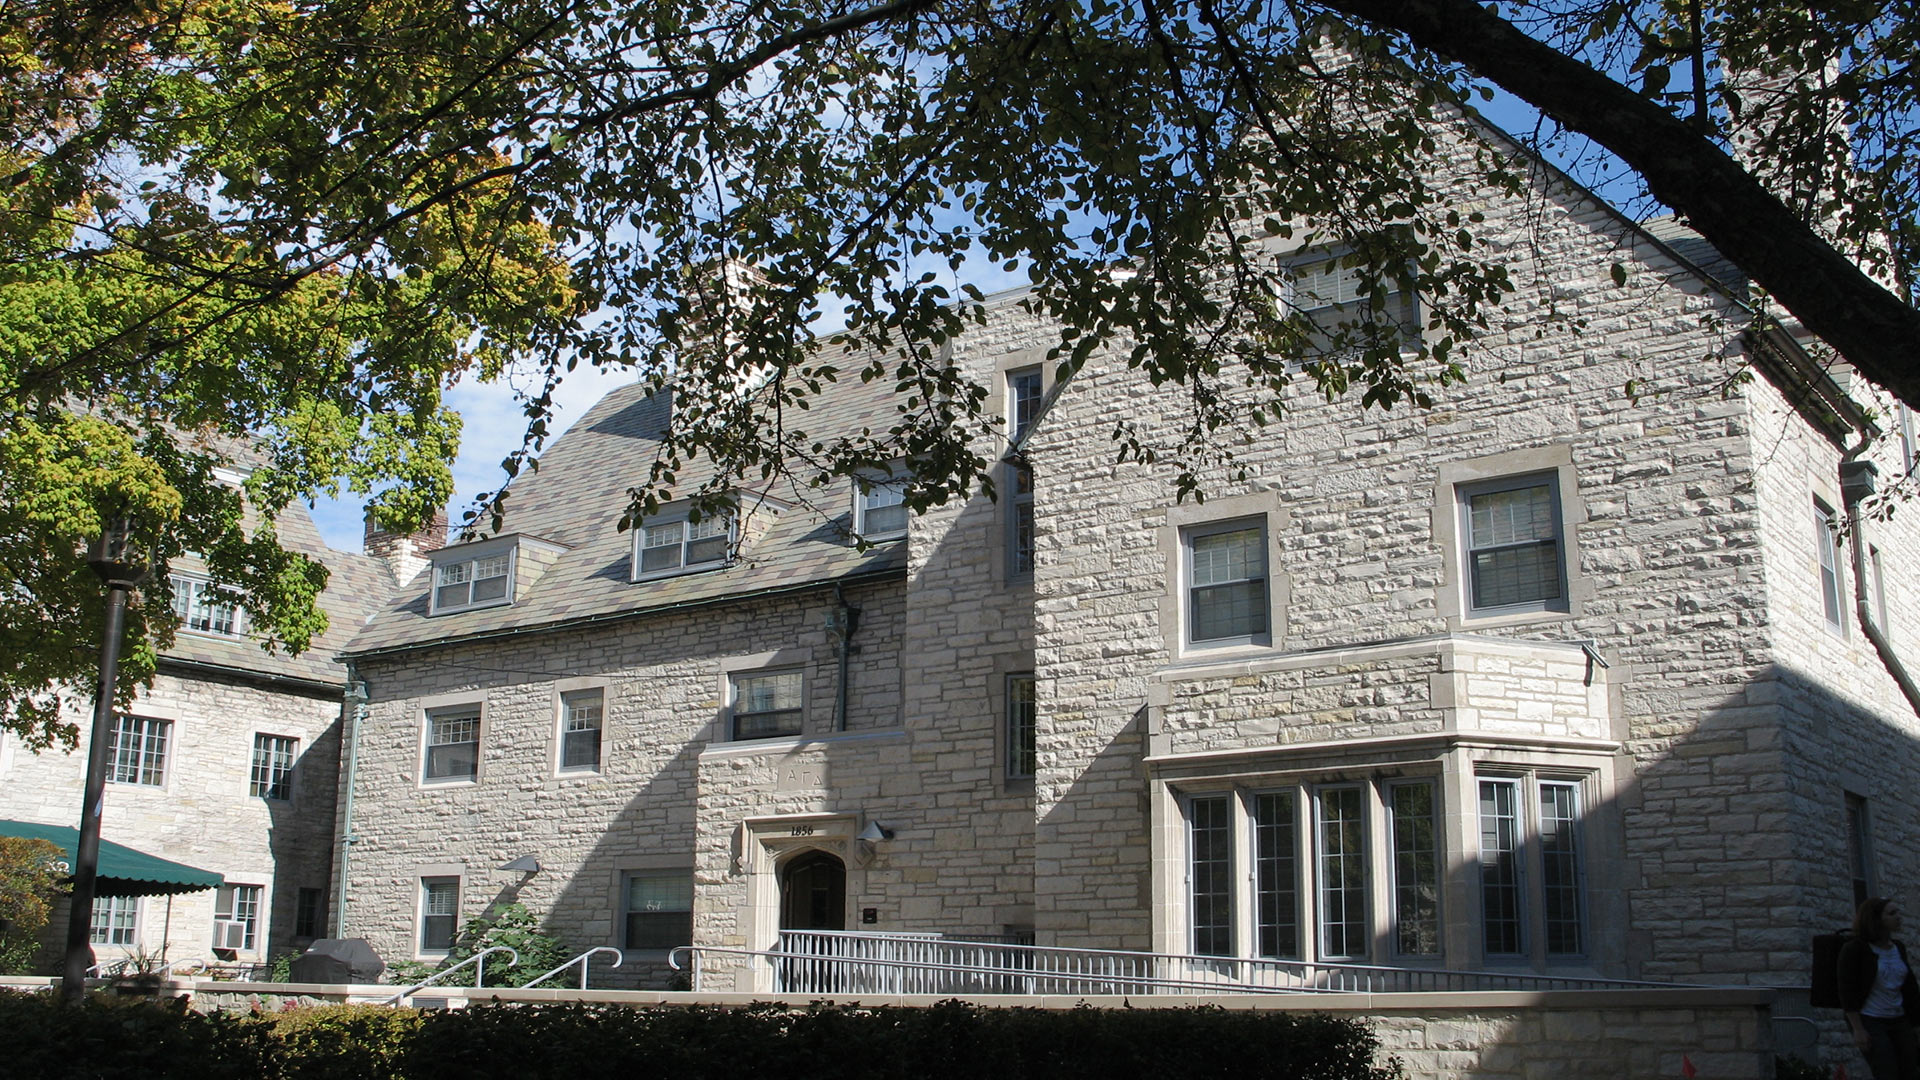 Northwestern University 1856 Orrington Residence Hall